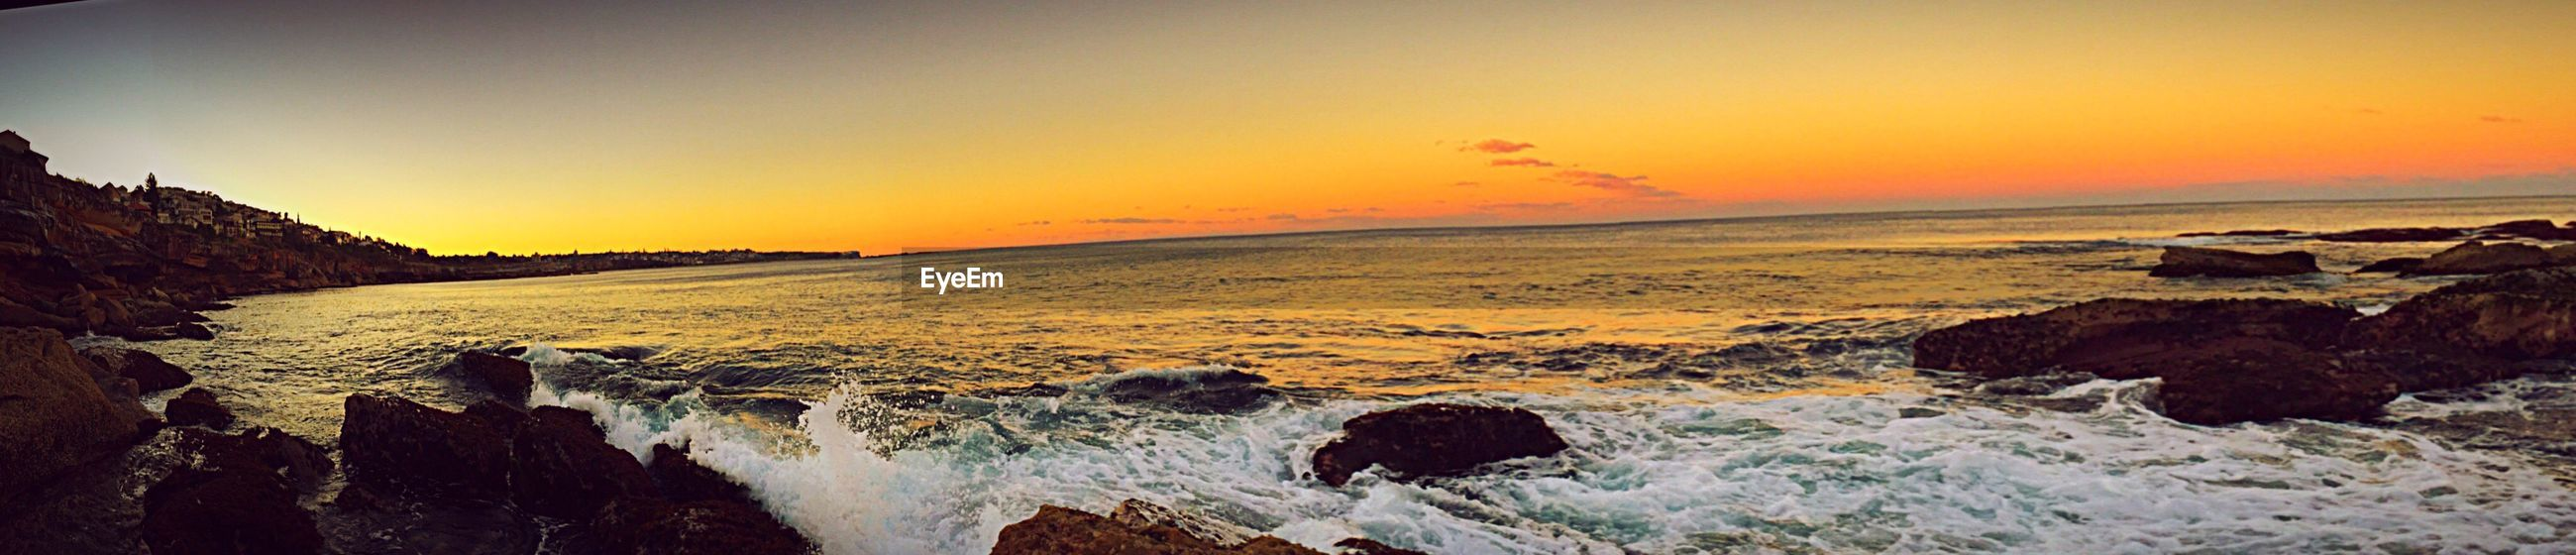 sunset, sea, water, scenics, tranquil scene, beauty in nature, rock - object, tranquility, horizon over water, orange color, idyllic, nature, sky, non-urban scene, remote, outdoors, majestic, rocky, shore, calm, rock formation, wave, coastline, rocky coastline, seascape, waterfront, cliff, tourism, vacations